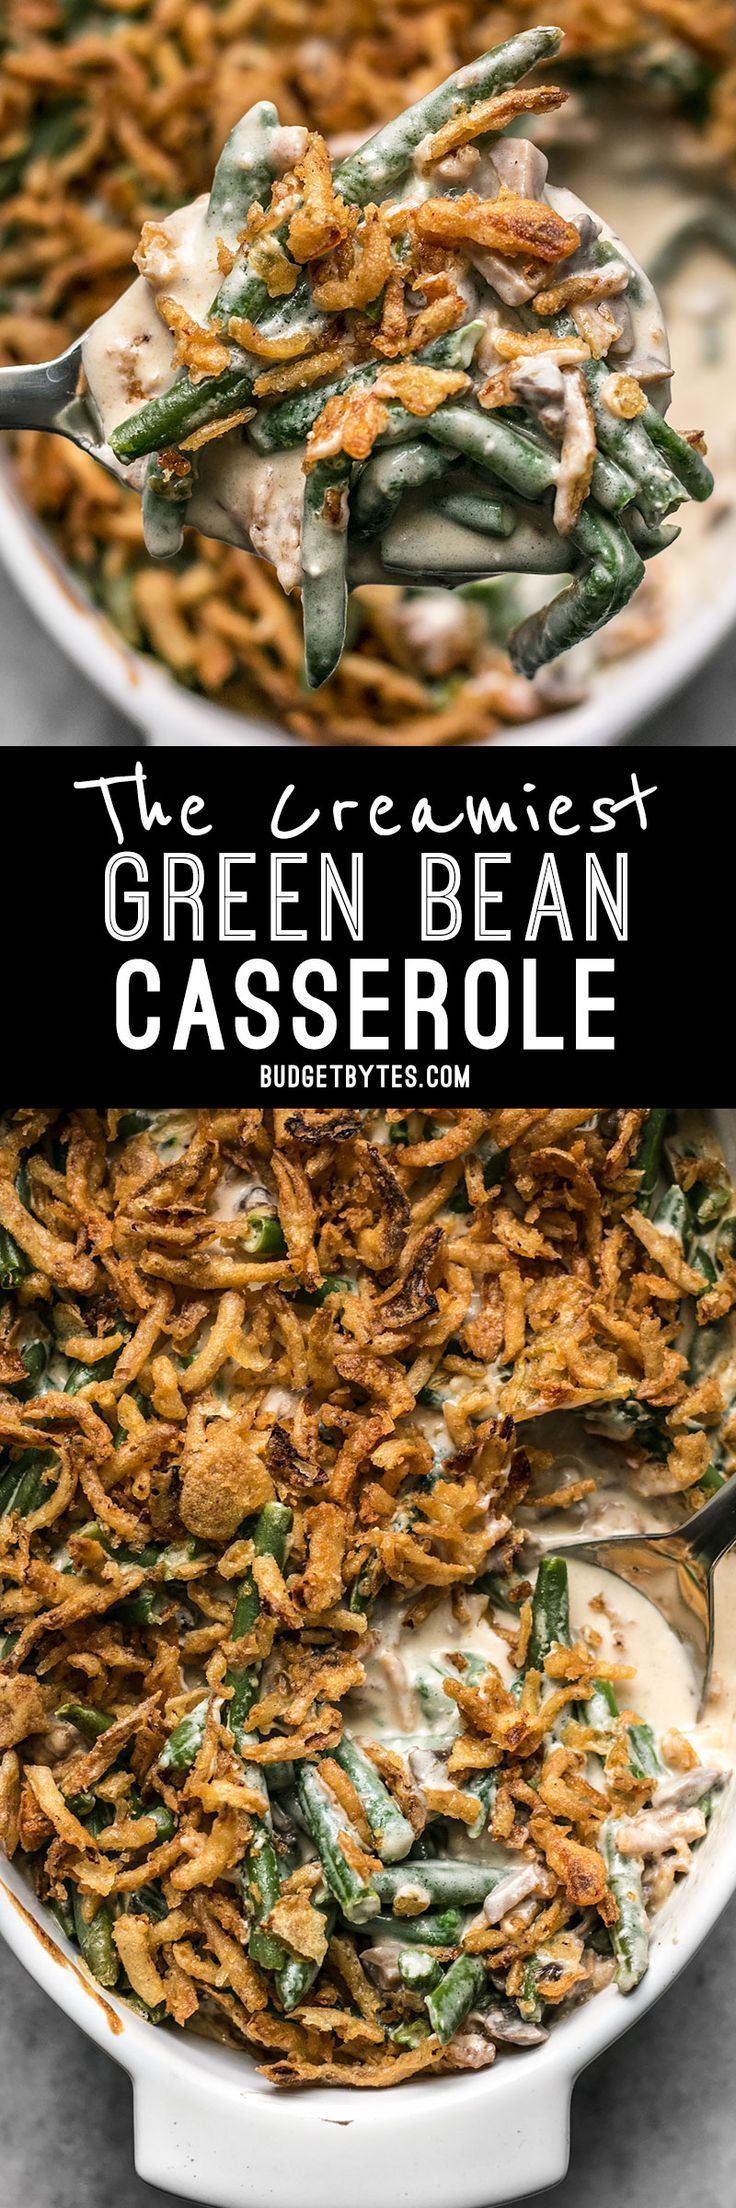 "This is the Creamiest Green Bean Casserole you'll ever make with no ""cream of"" soups. The ingredient list is short and simple, but flavors are classic and comforting."